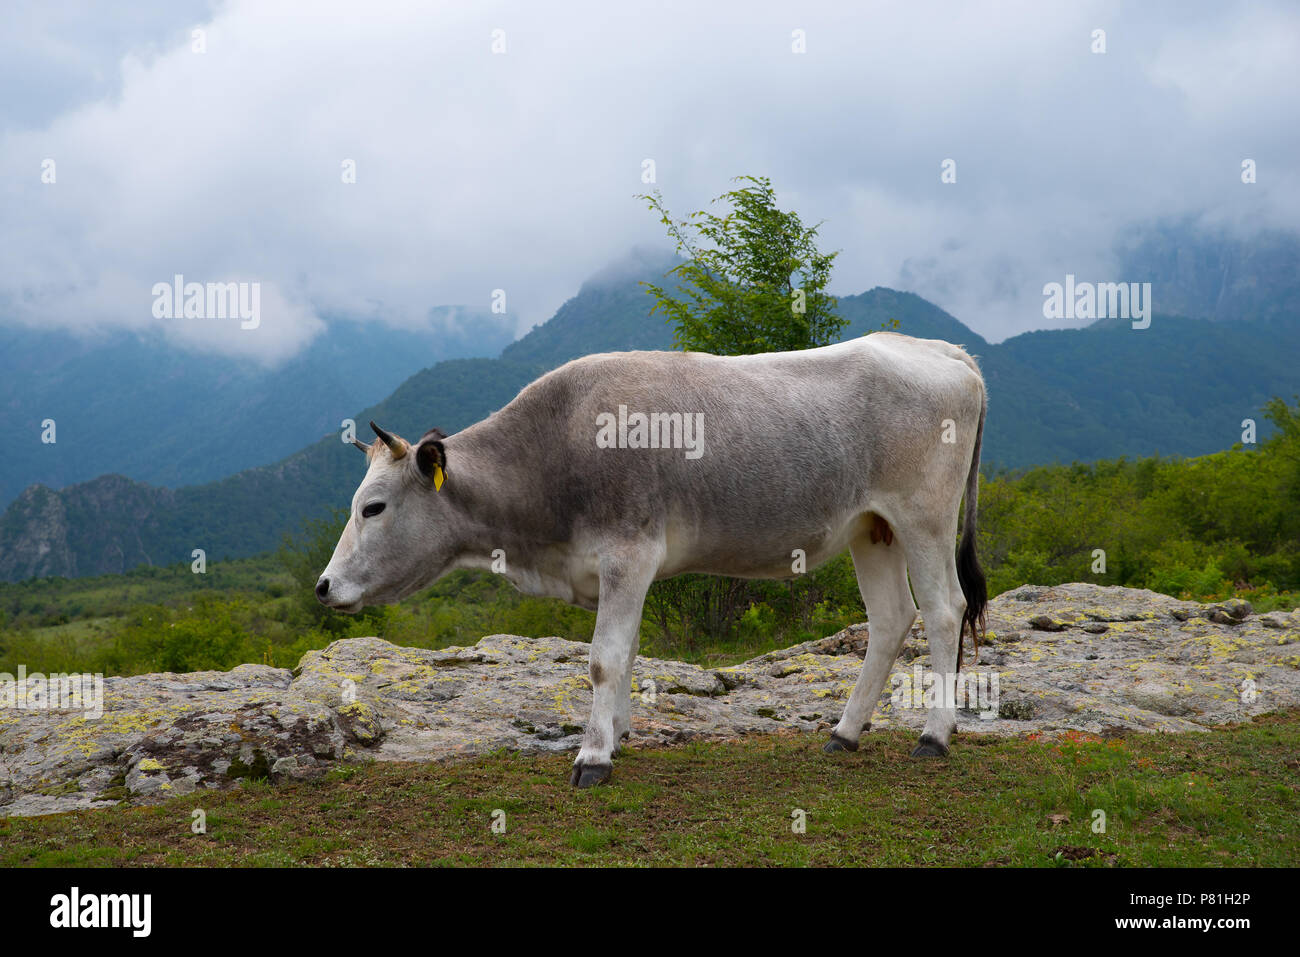 Primitive cattle breed. Bulgarian gray cattle. - Stock Image